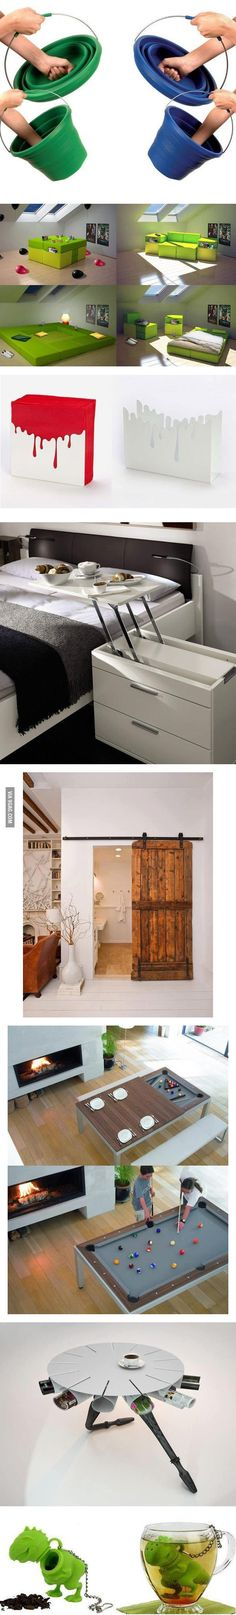 Cool stuff you will want for your home